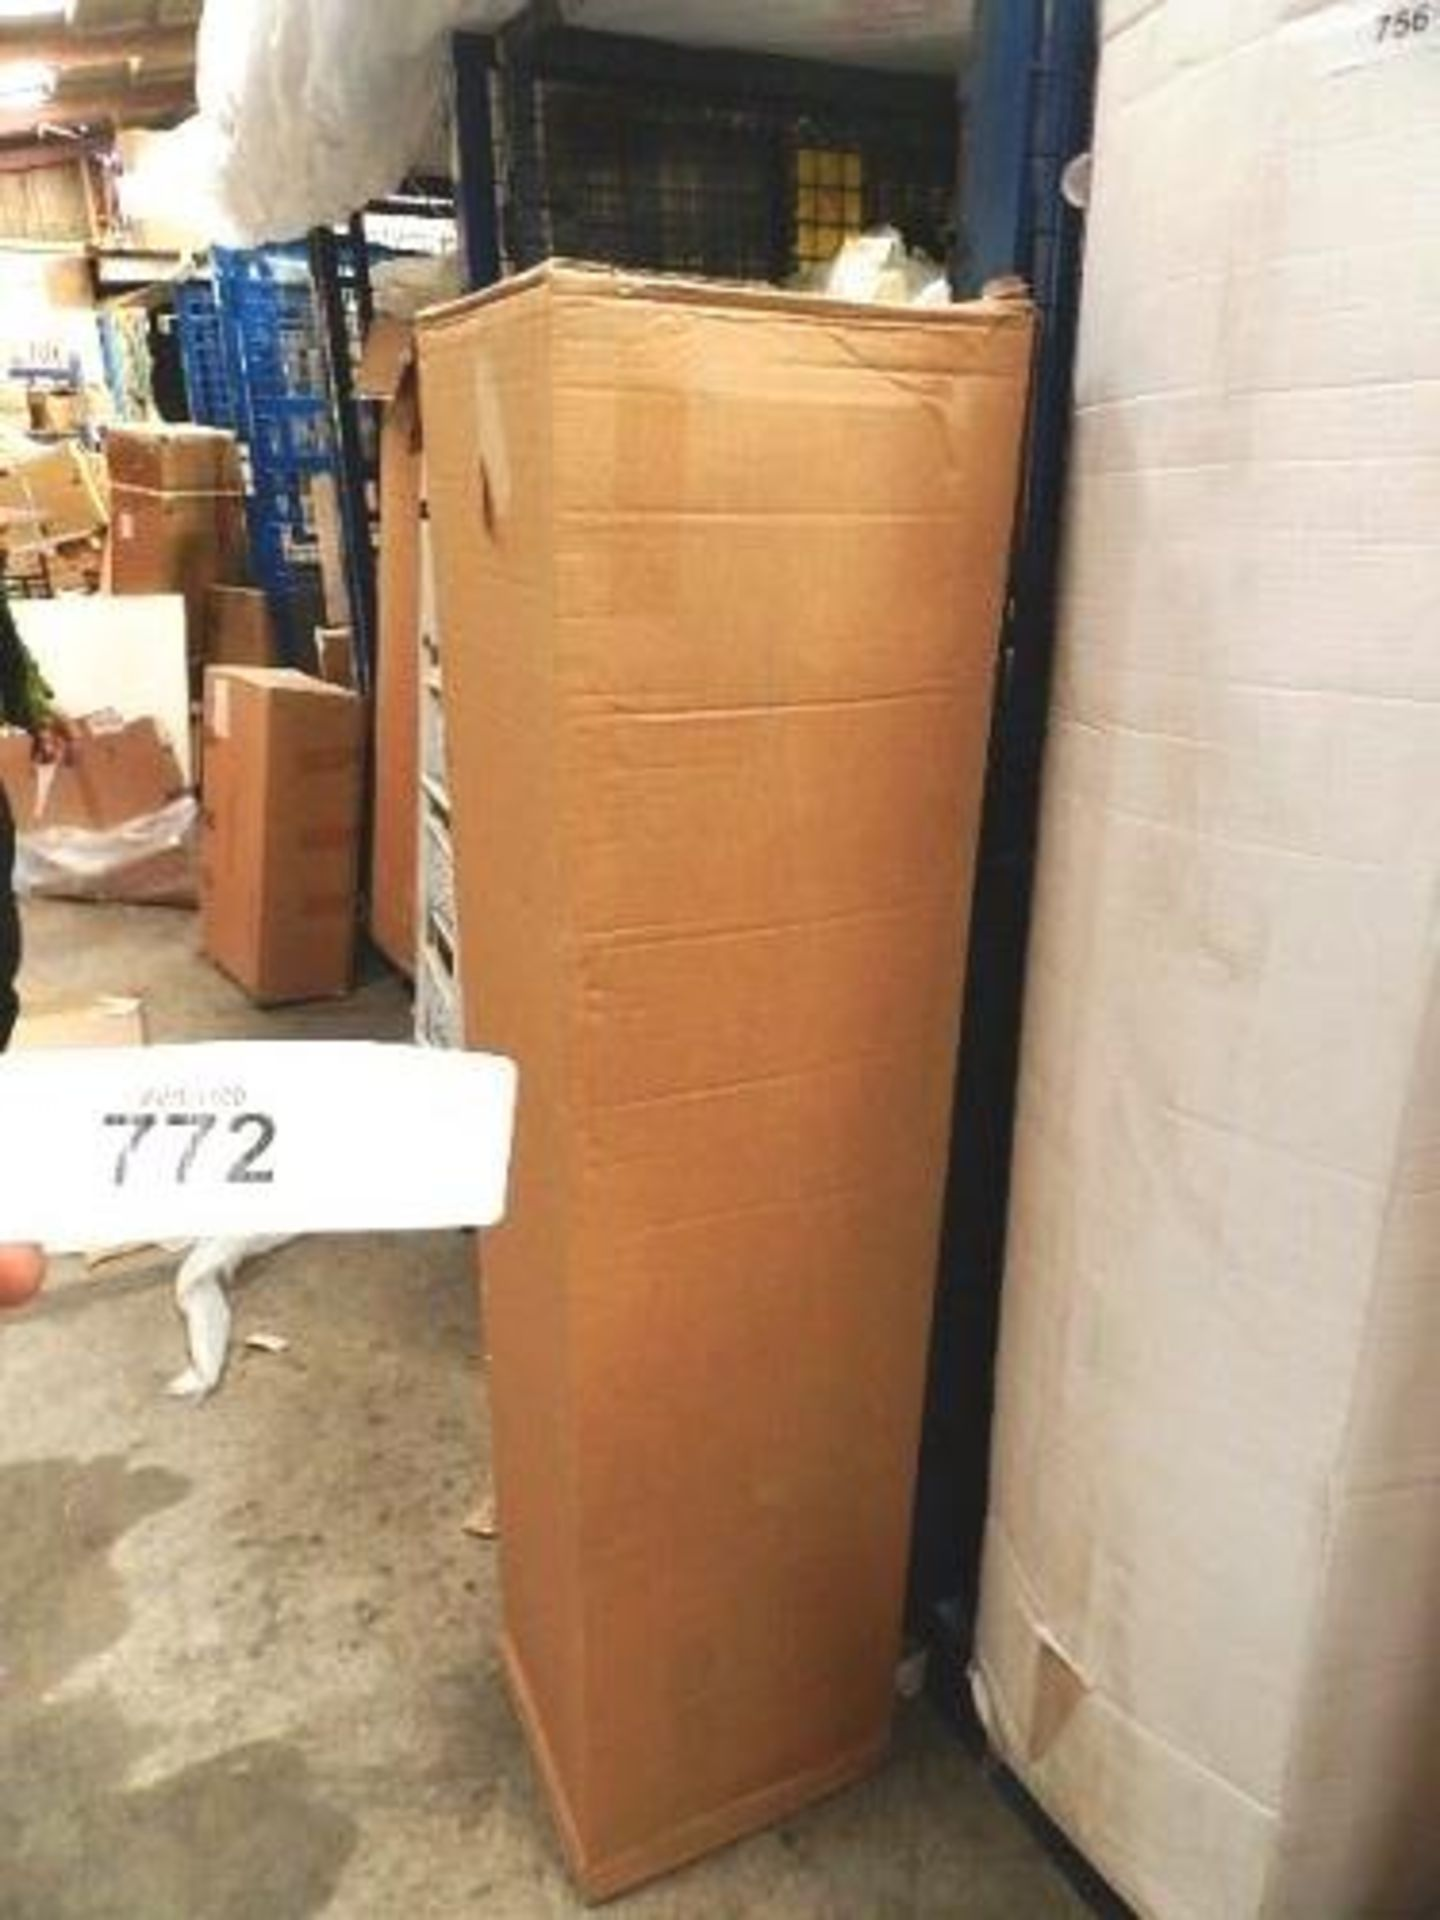 Lot 772 - 1 x sprung double mattress, 4ft wide - Sealed new in box (GSF33)